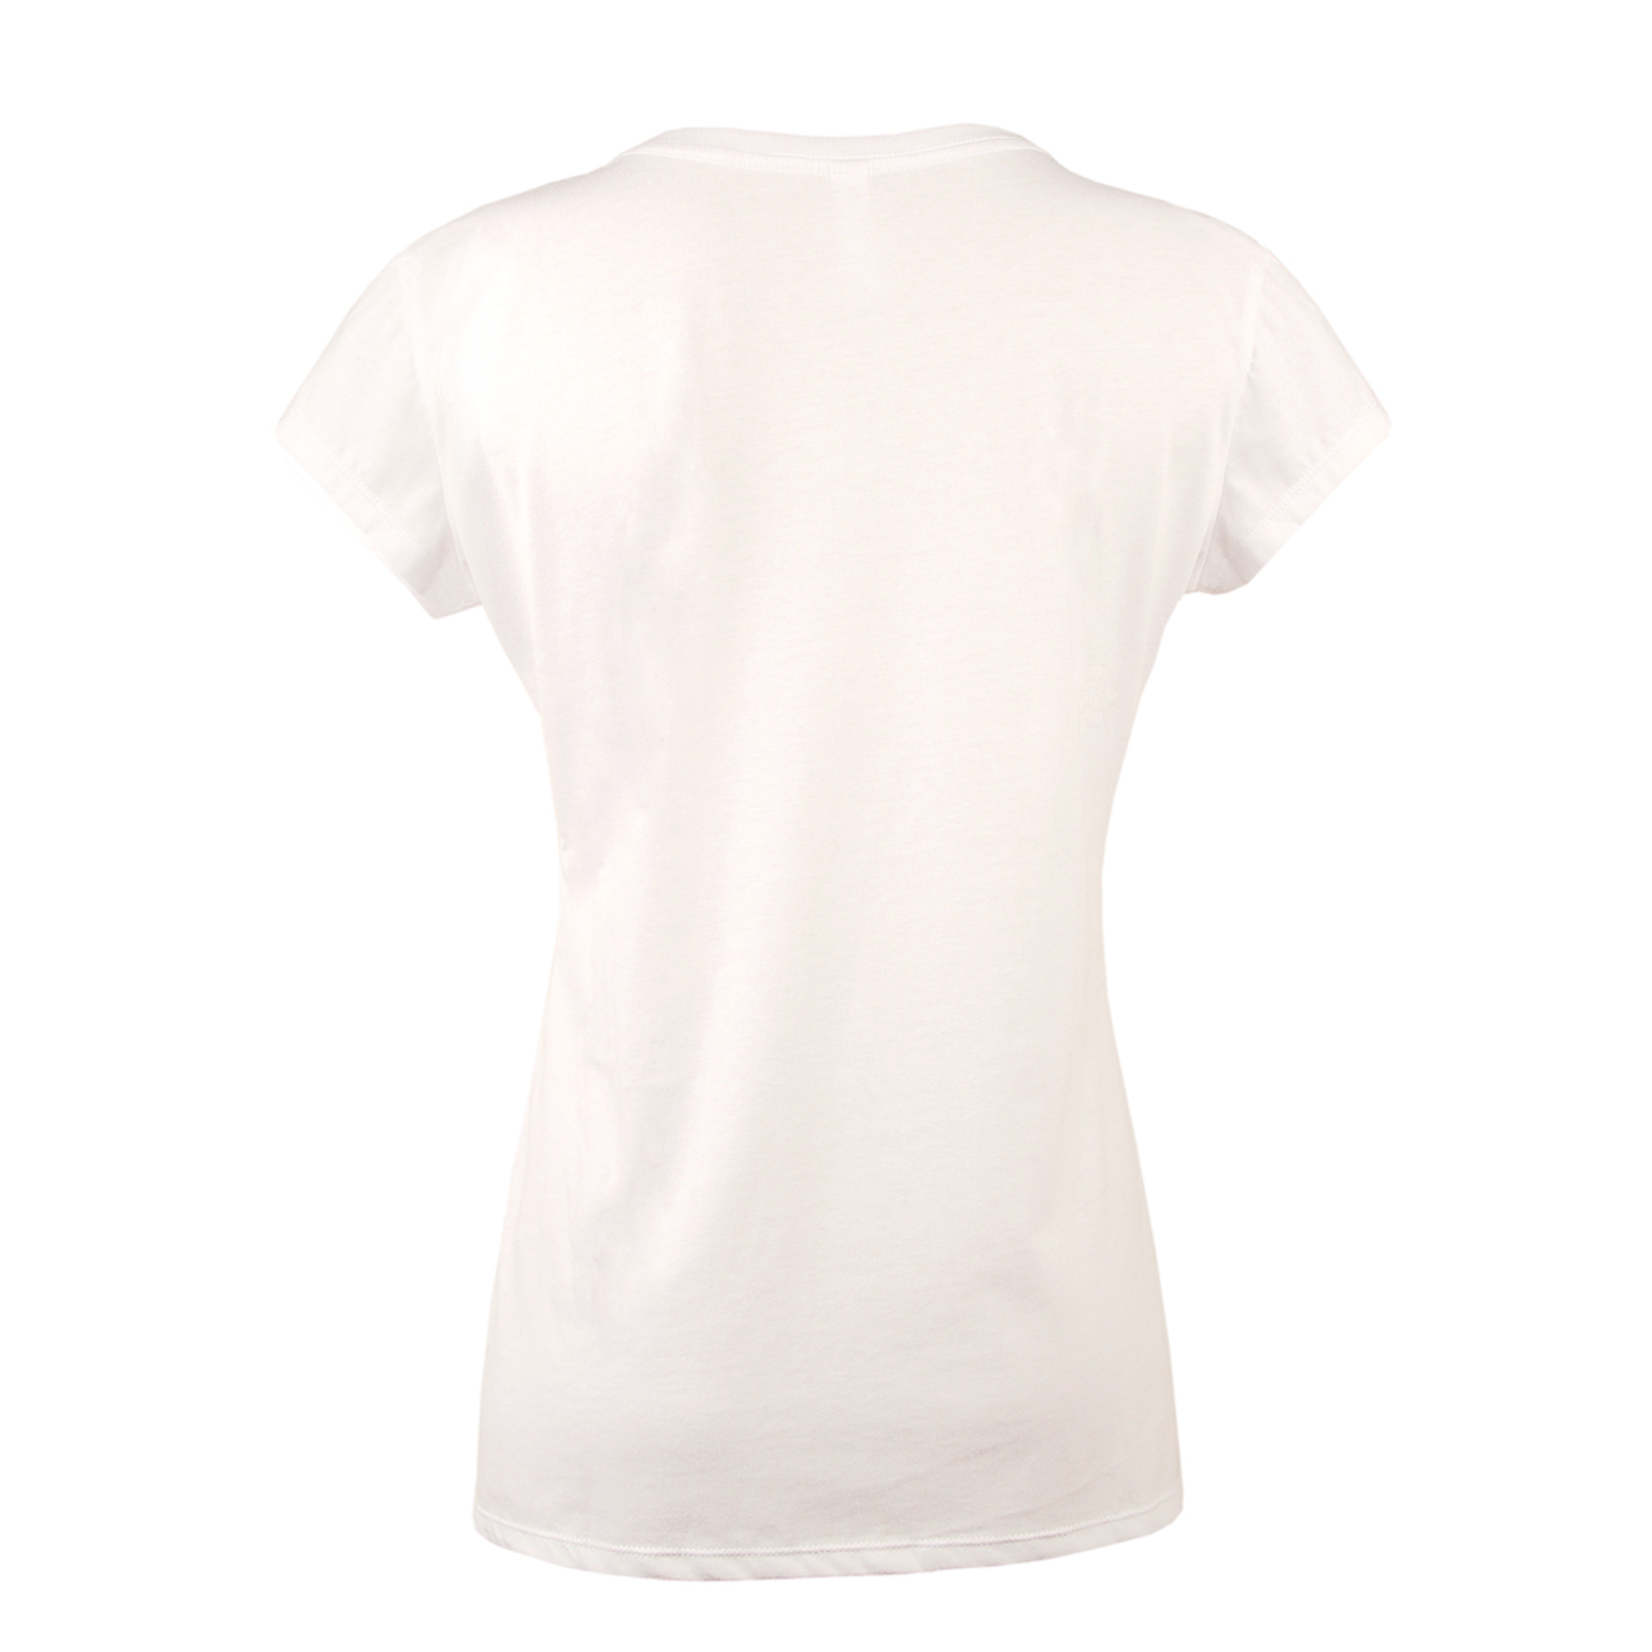 Clothing Tshirt - Fitted - Striped Opera House White